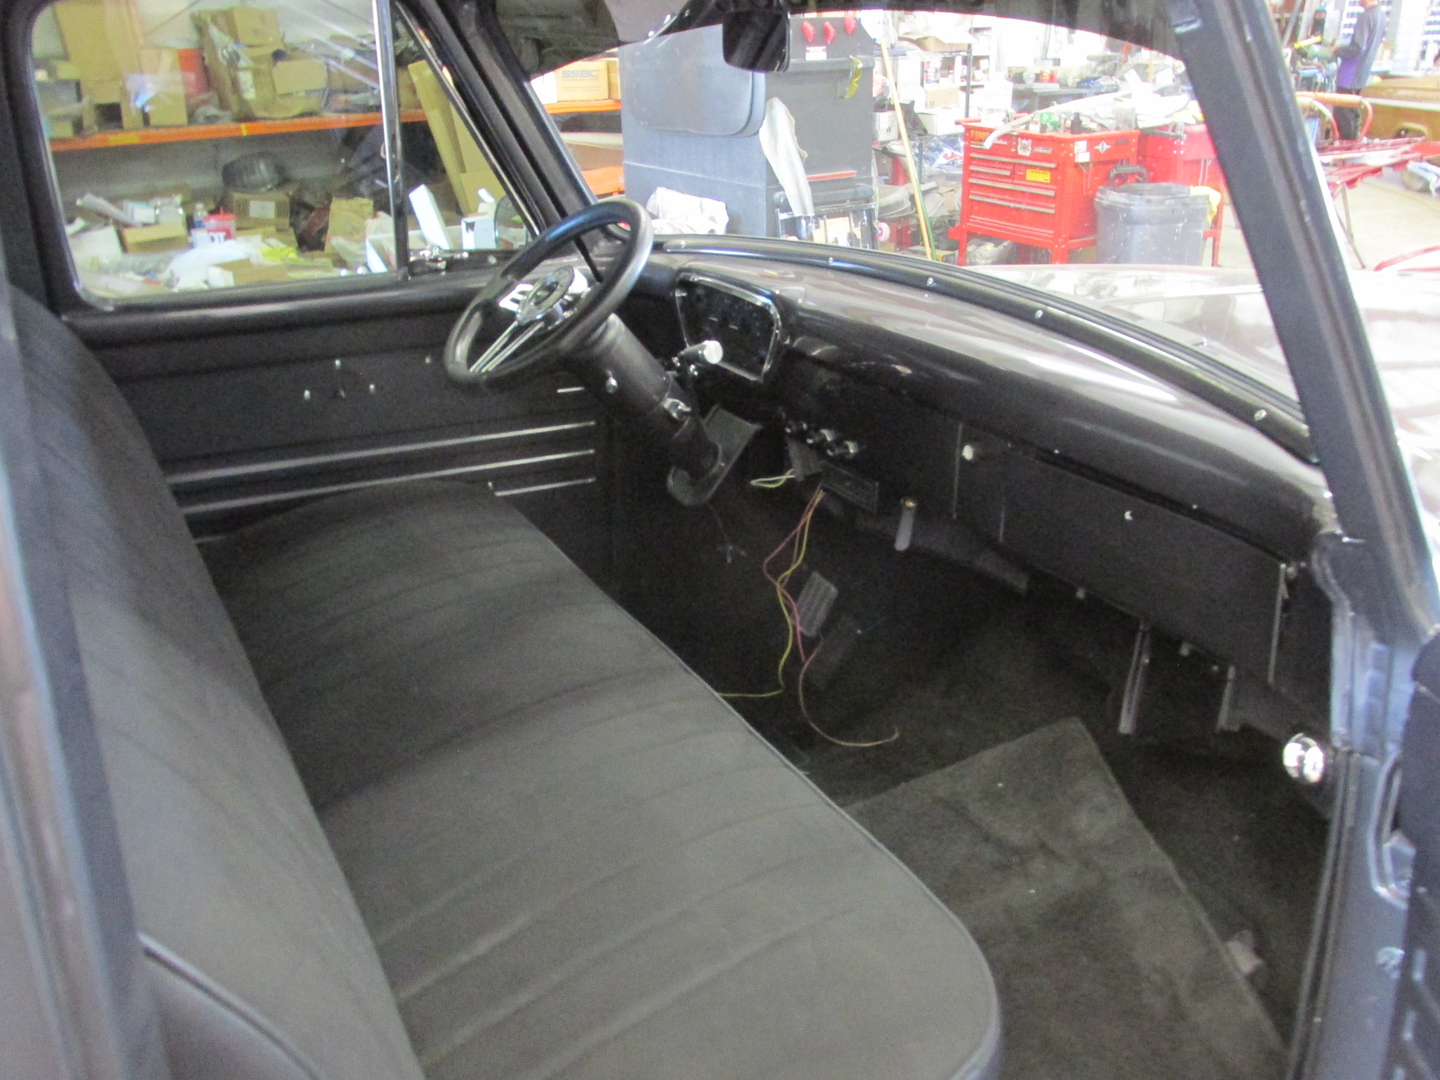 55 F100 1955 Ford Interior Seat This Is A Beautiful With 302 Motor And Aod Transmission Its Painted Charcoal Grey Black Chrome Accents